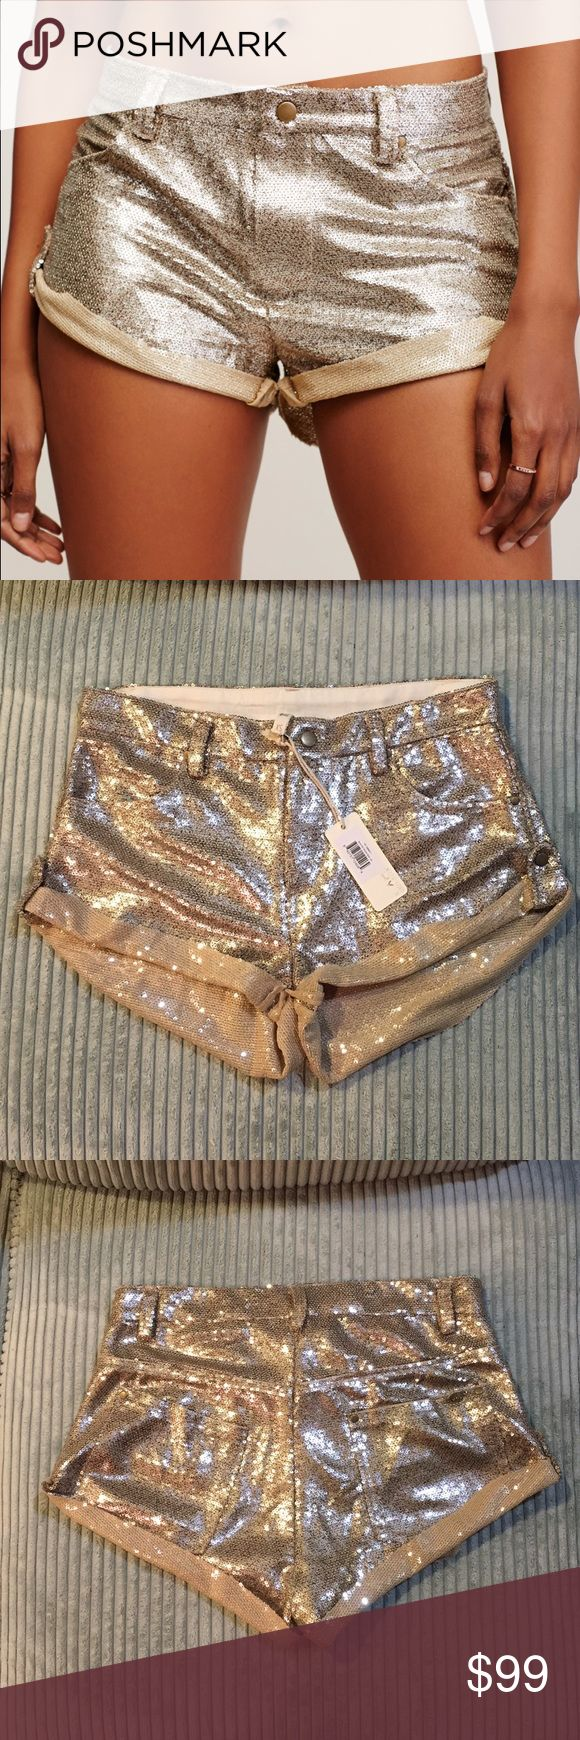 Free People Gold Sequin Shorts Brand new with tags. They are not super small, would probably fit up to a size 4. Bundle 3 or more items for an additional 20% off! Free People Shorts